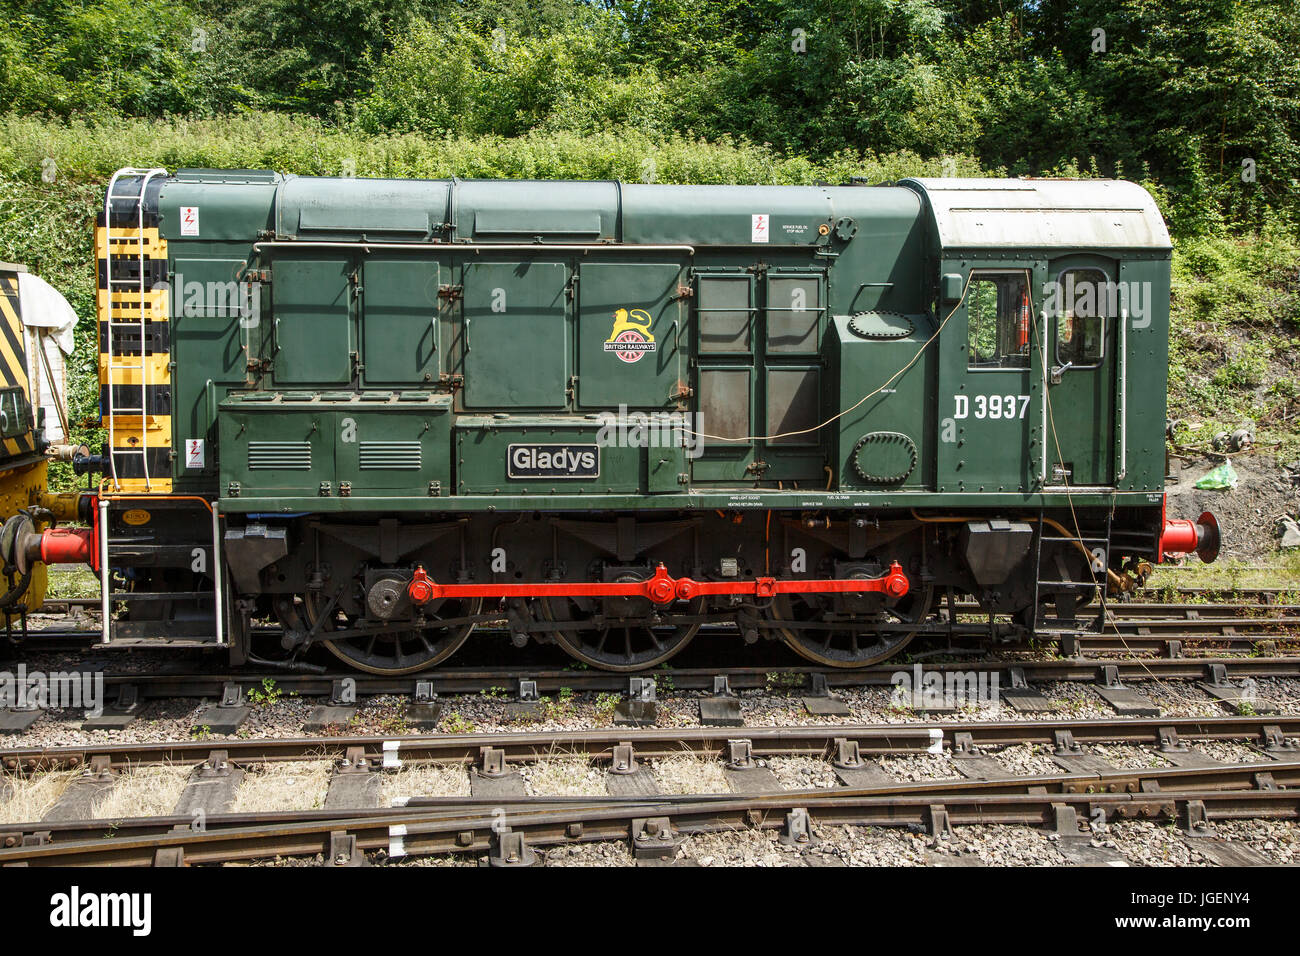 BR 0-6-0 Class 08, No. 08769 (D3937) 'Gladys', at the Dean Forest Railway, Forest of Dean, Gloucestershire - Stock Image